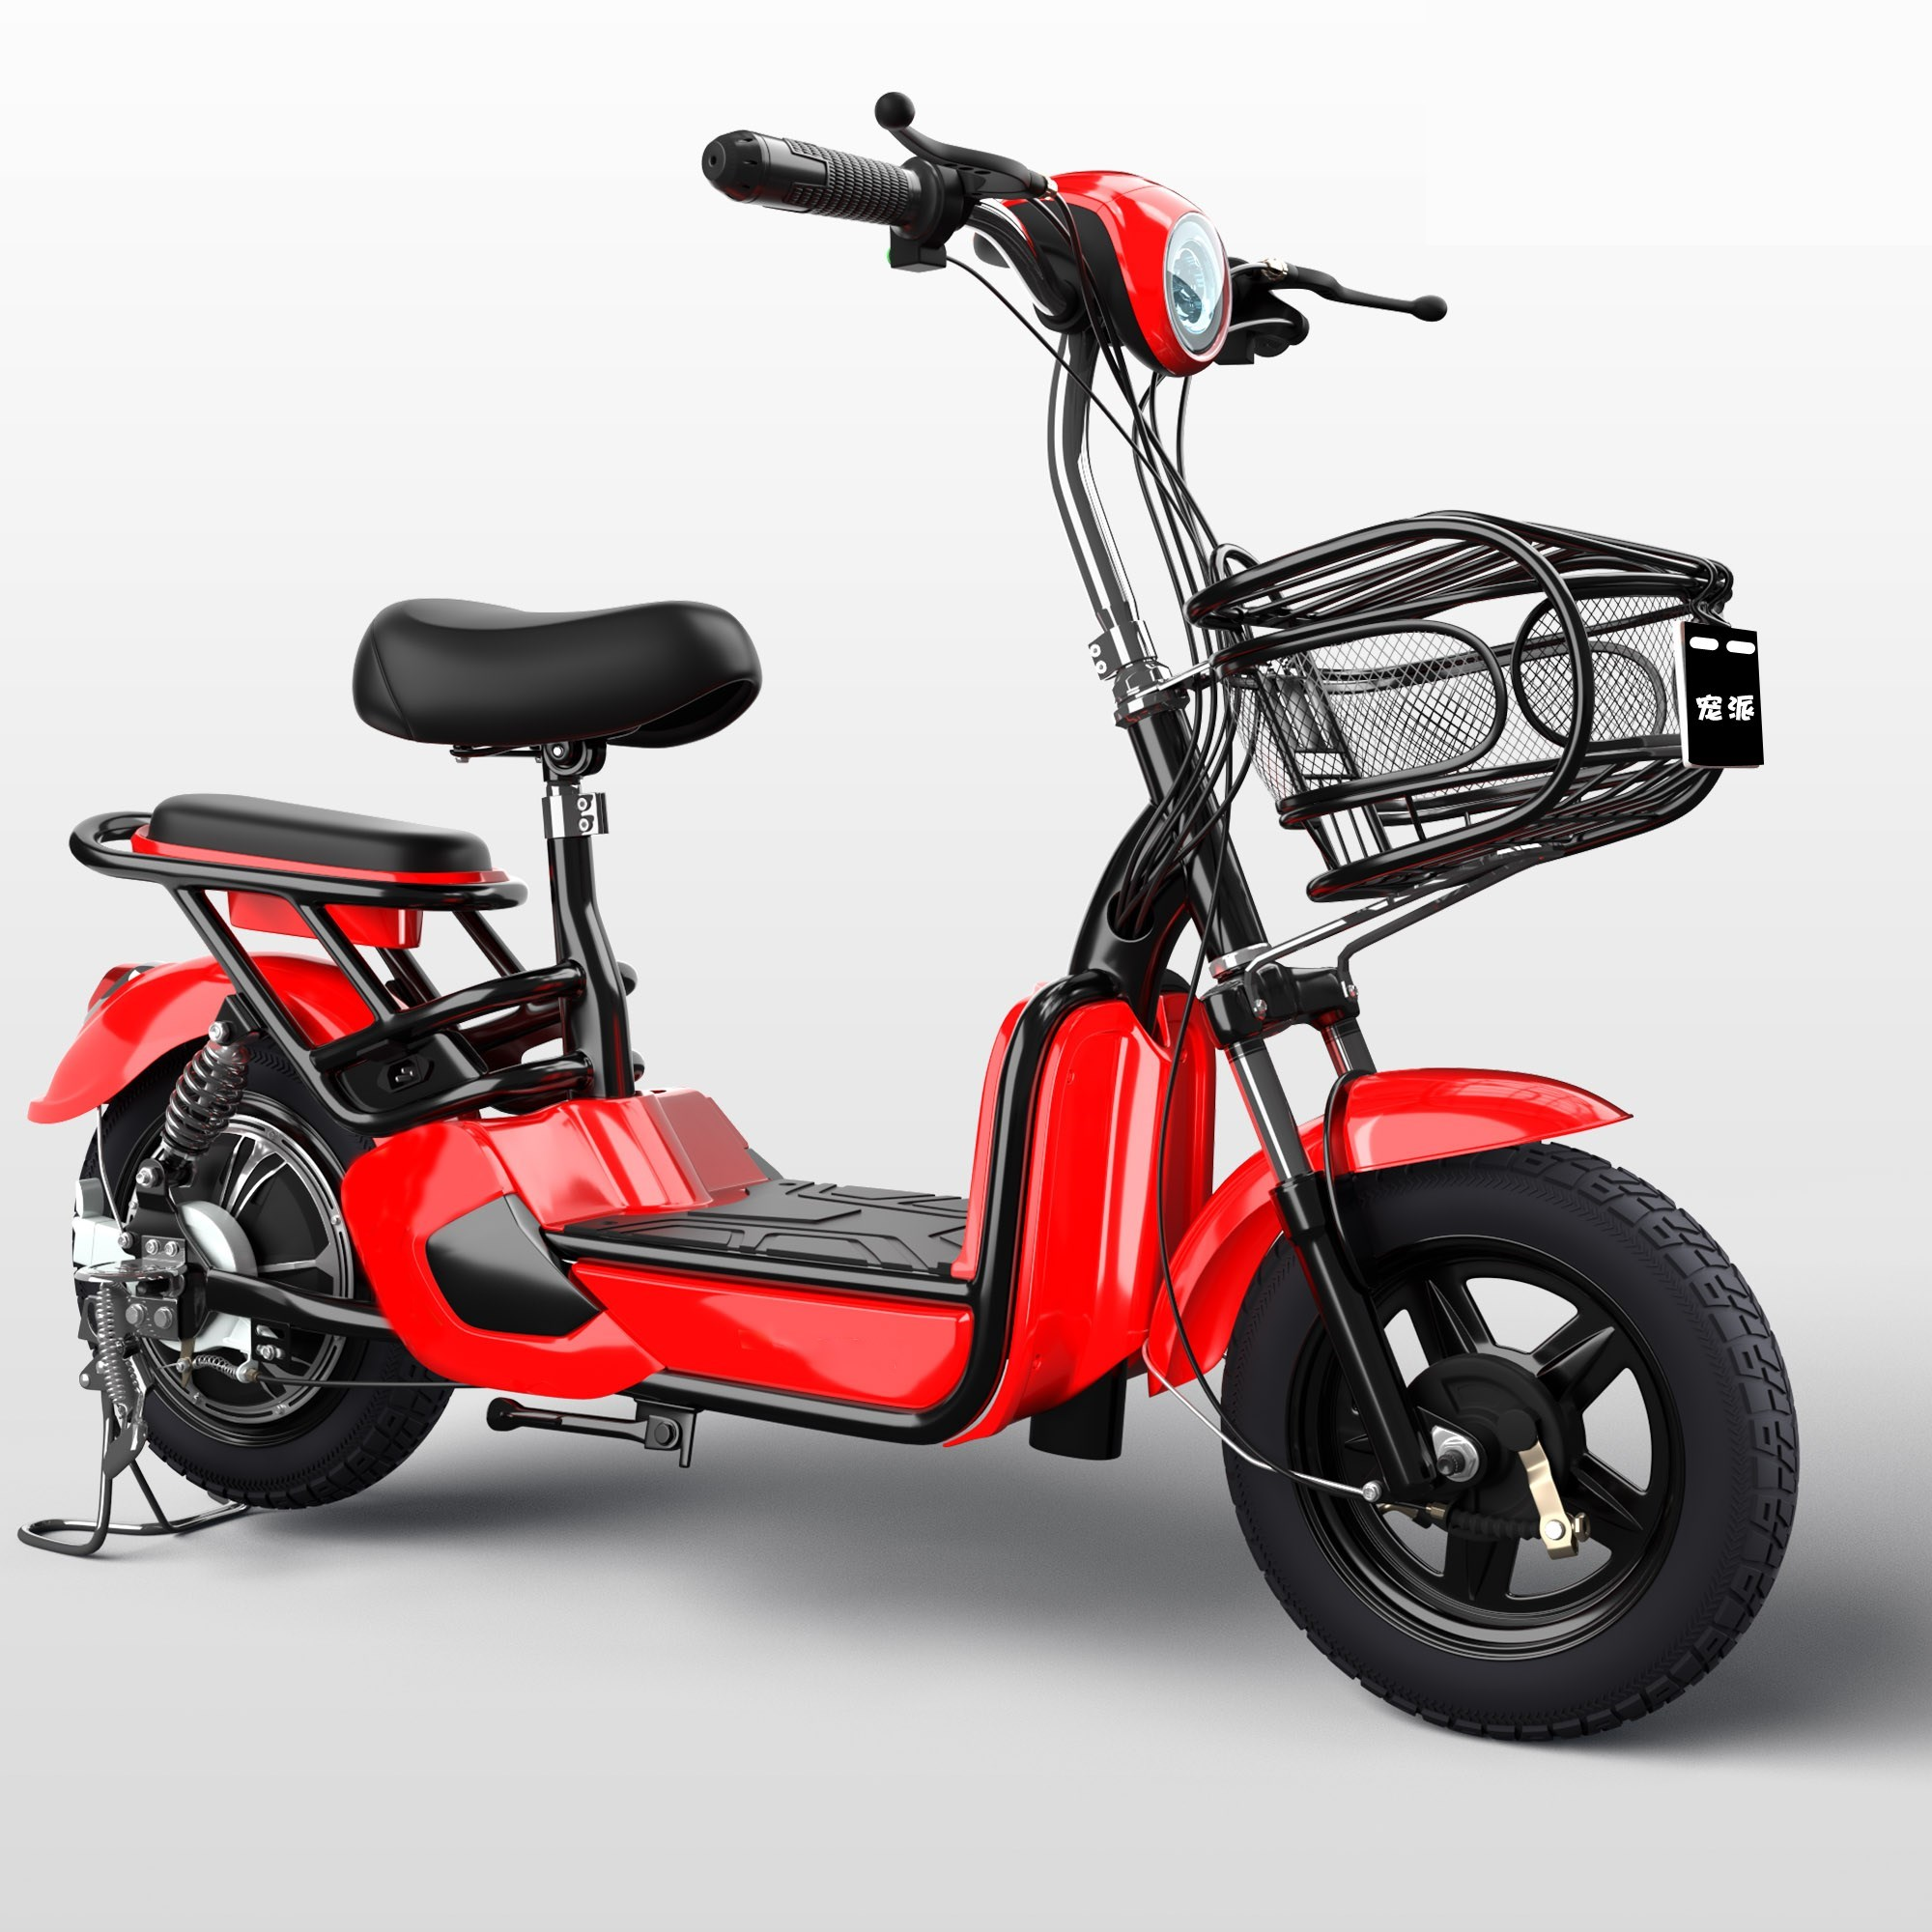 Scooter, electric universal mini car with portable power for boys small electric bicycle